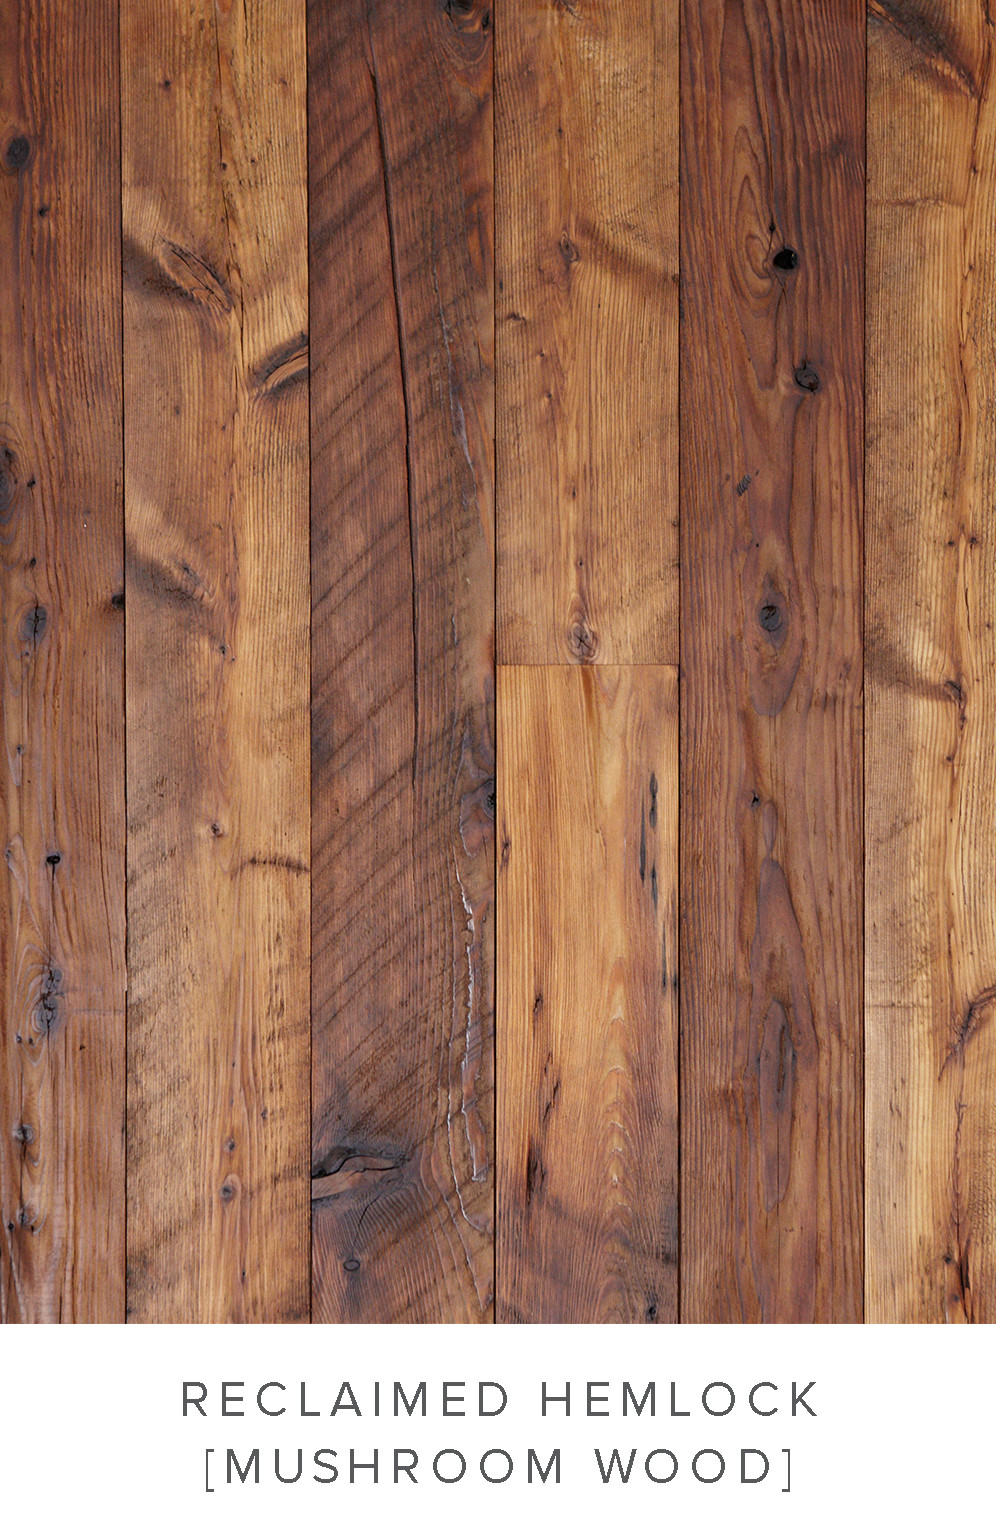 how to paint hardwood floors video of extensive range of reclaimed wood flooring all under one roof at the with reclaimed hemlock mushroom wood